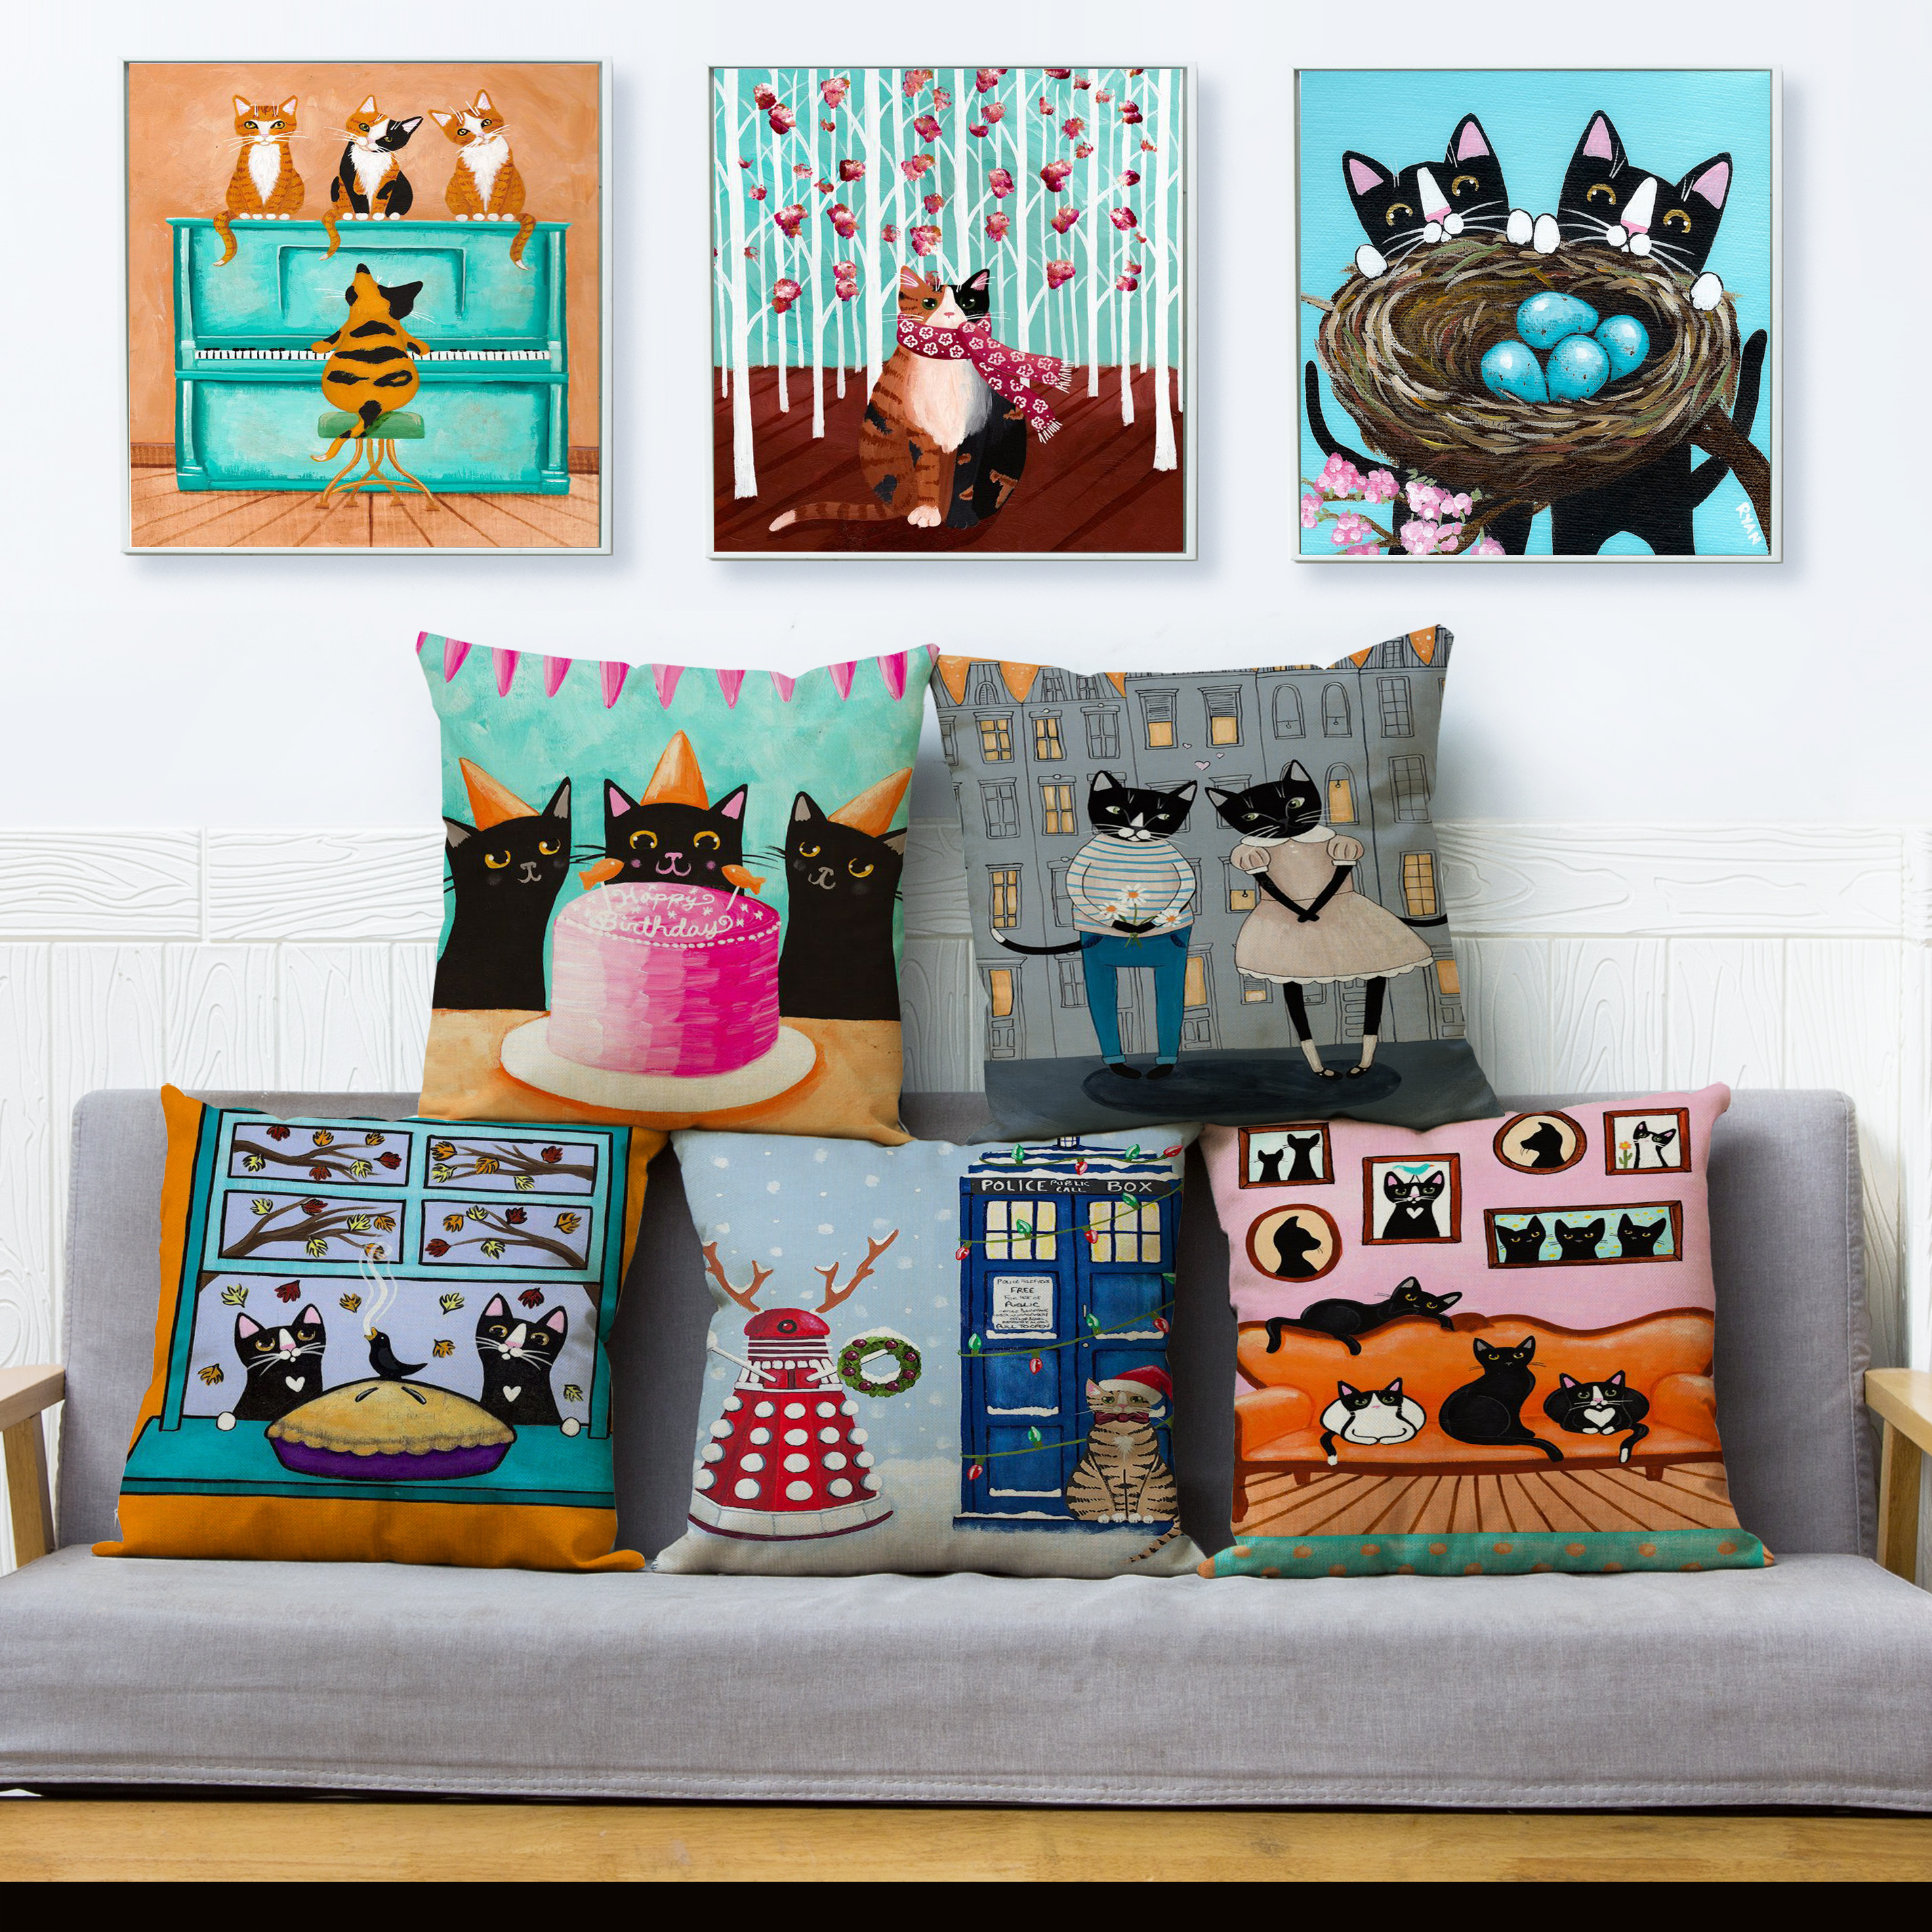 Cute Cartoon Cats Print Cushion Cover Ryan Conners Funny Cat Pillow Covers 45*45 Linen Pillows Cases Sofa Home Decor Pillow Case